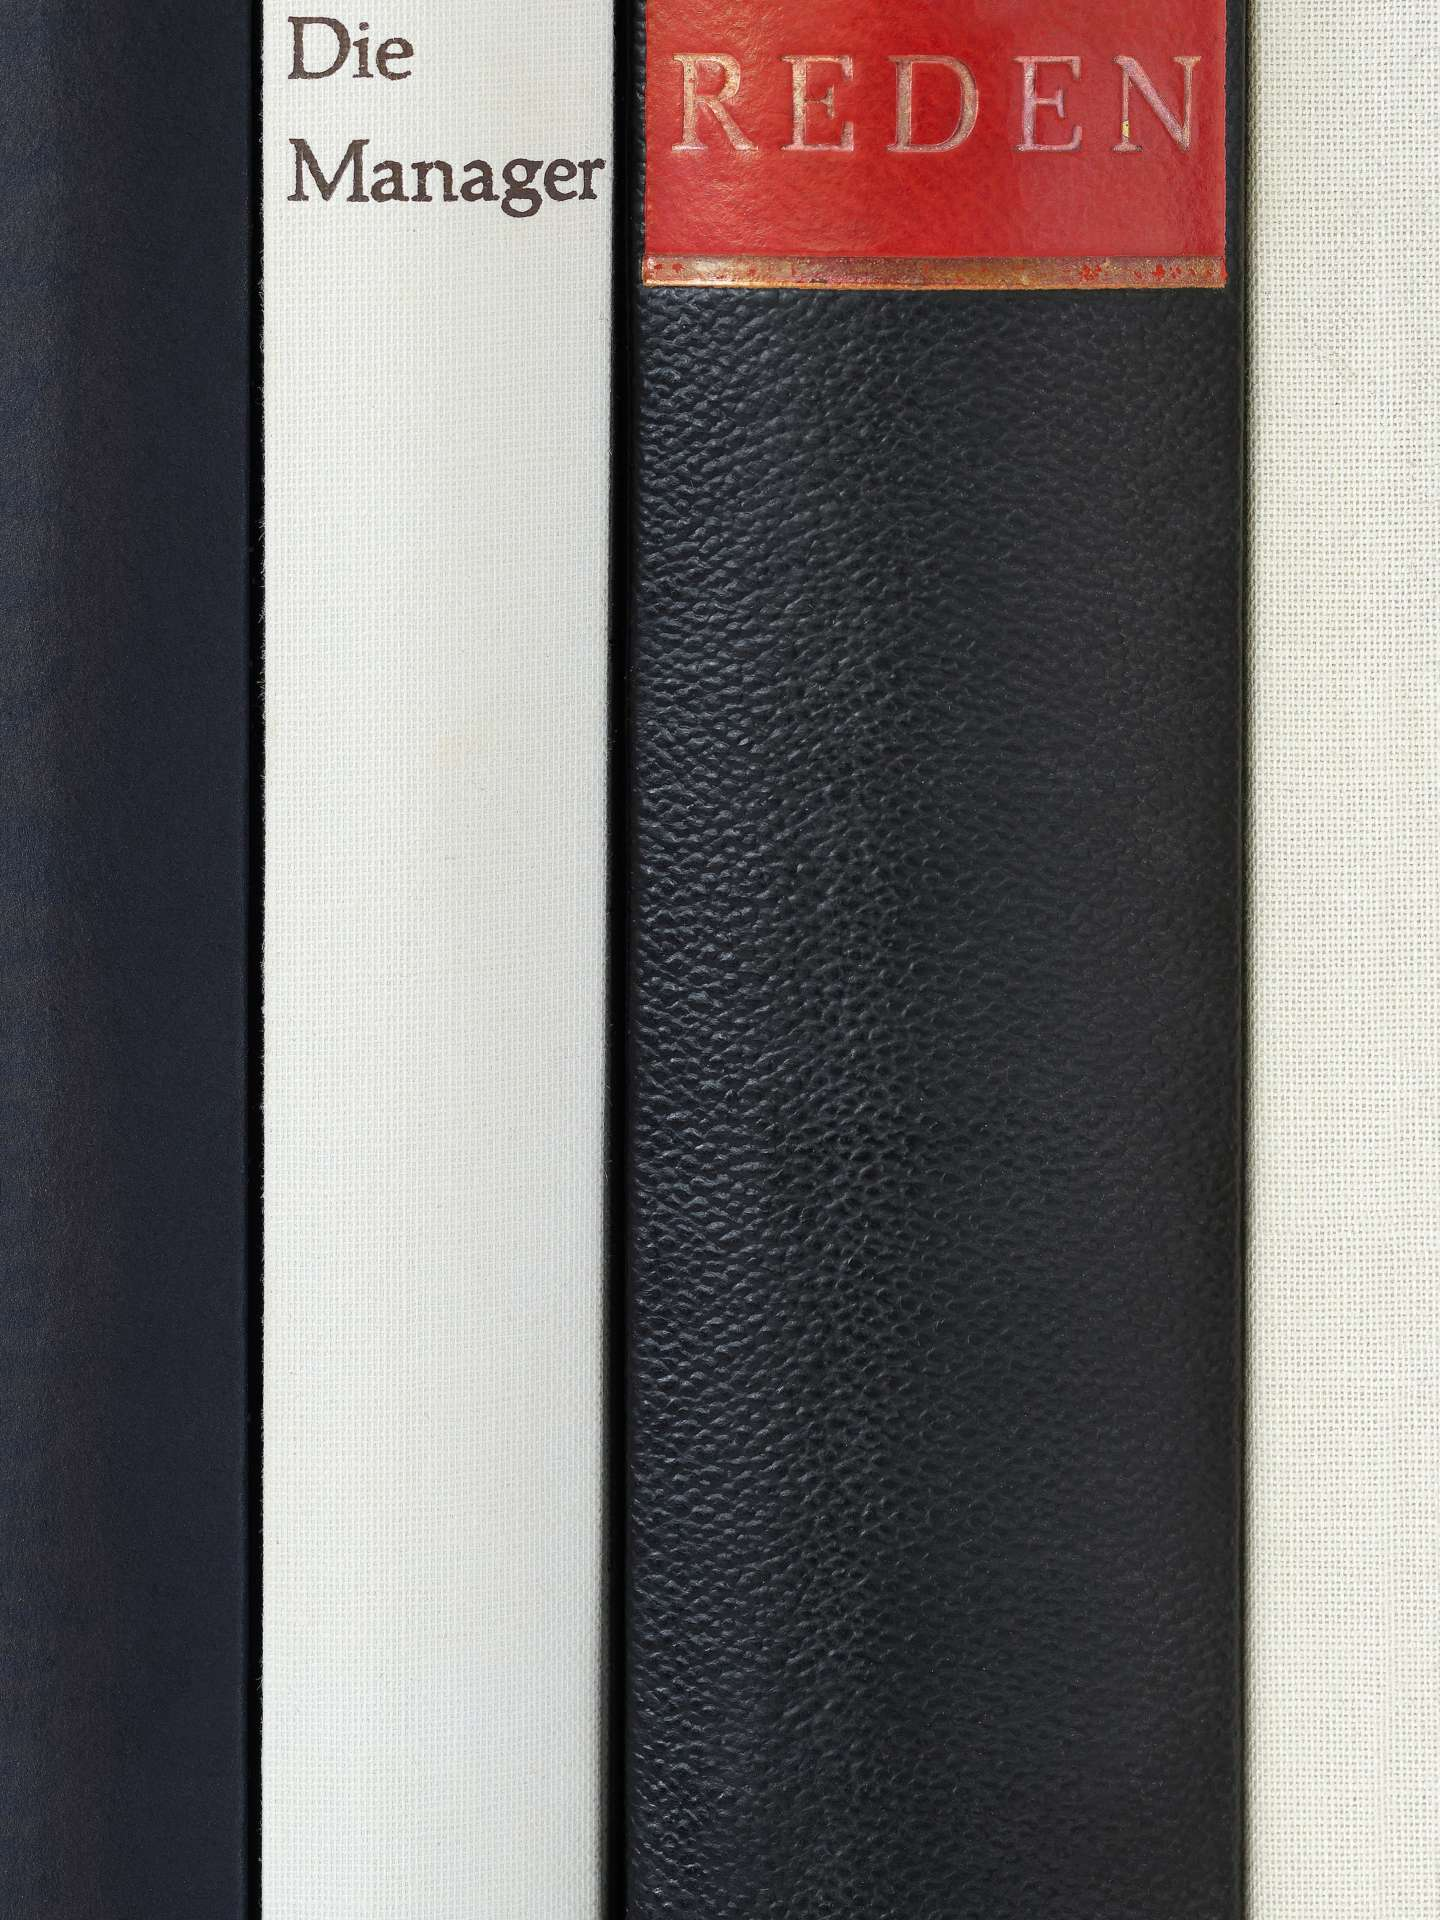 Several black and white book spines stand side by side, on which the managers and talking stands in german